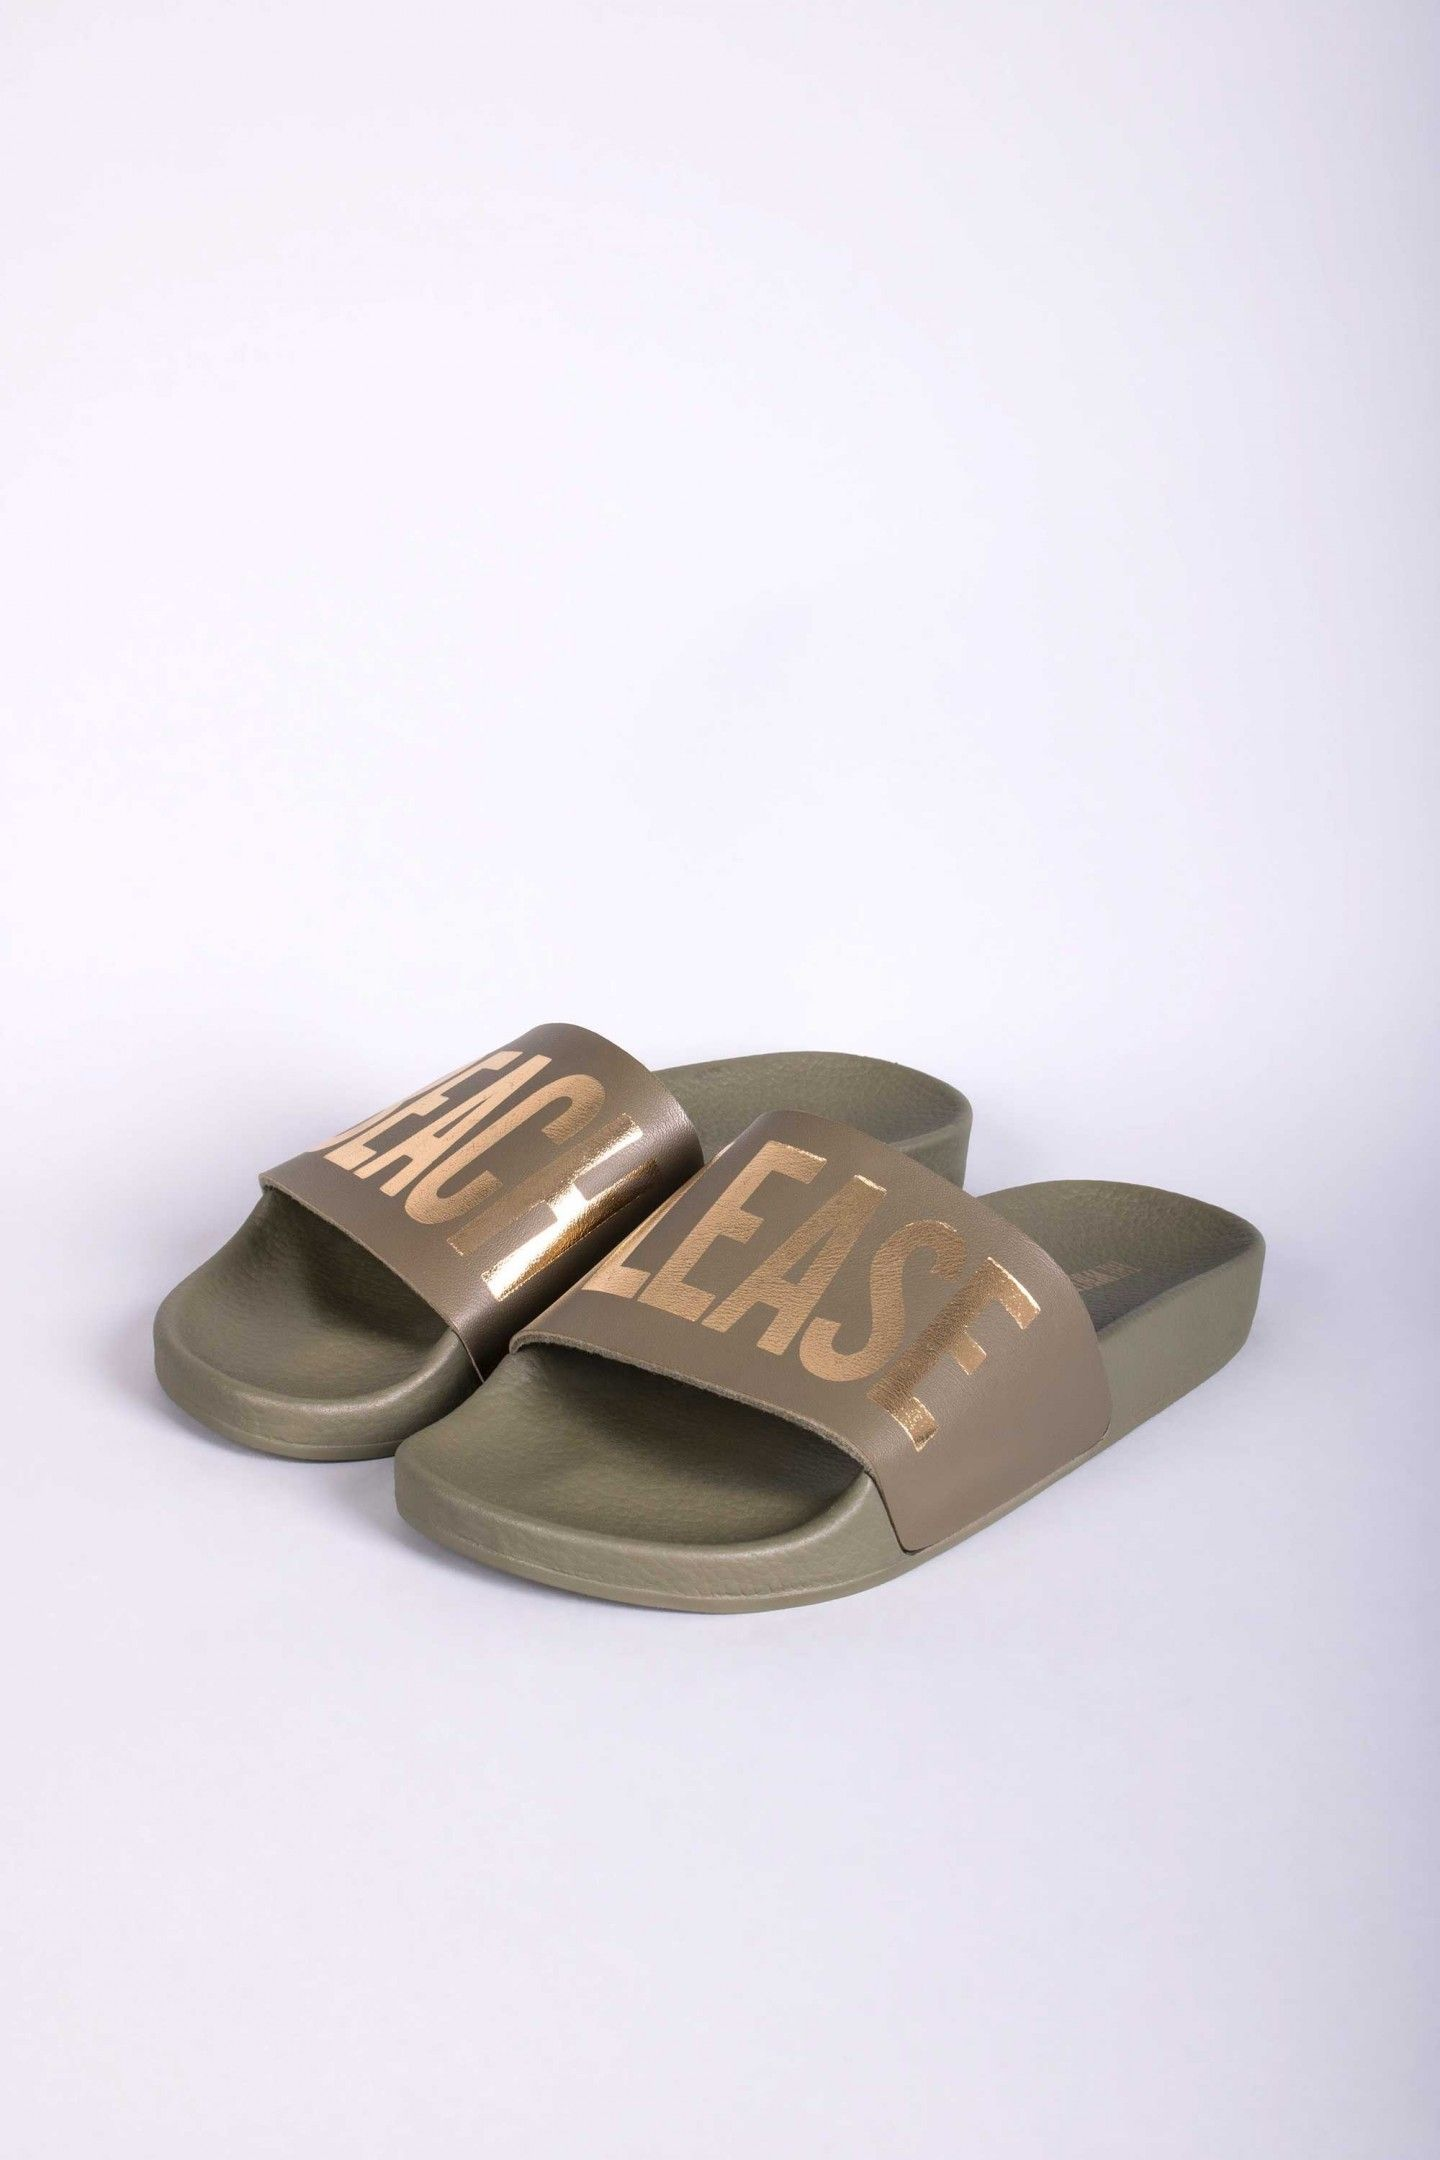 8e2a1f6e9383f BEACH ARMY - TheWhiteBrand SS 18 New Collection. Women s flat slide sandal  in army green